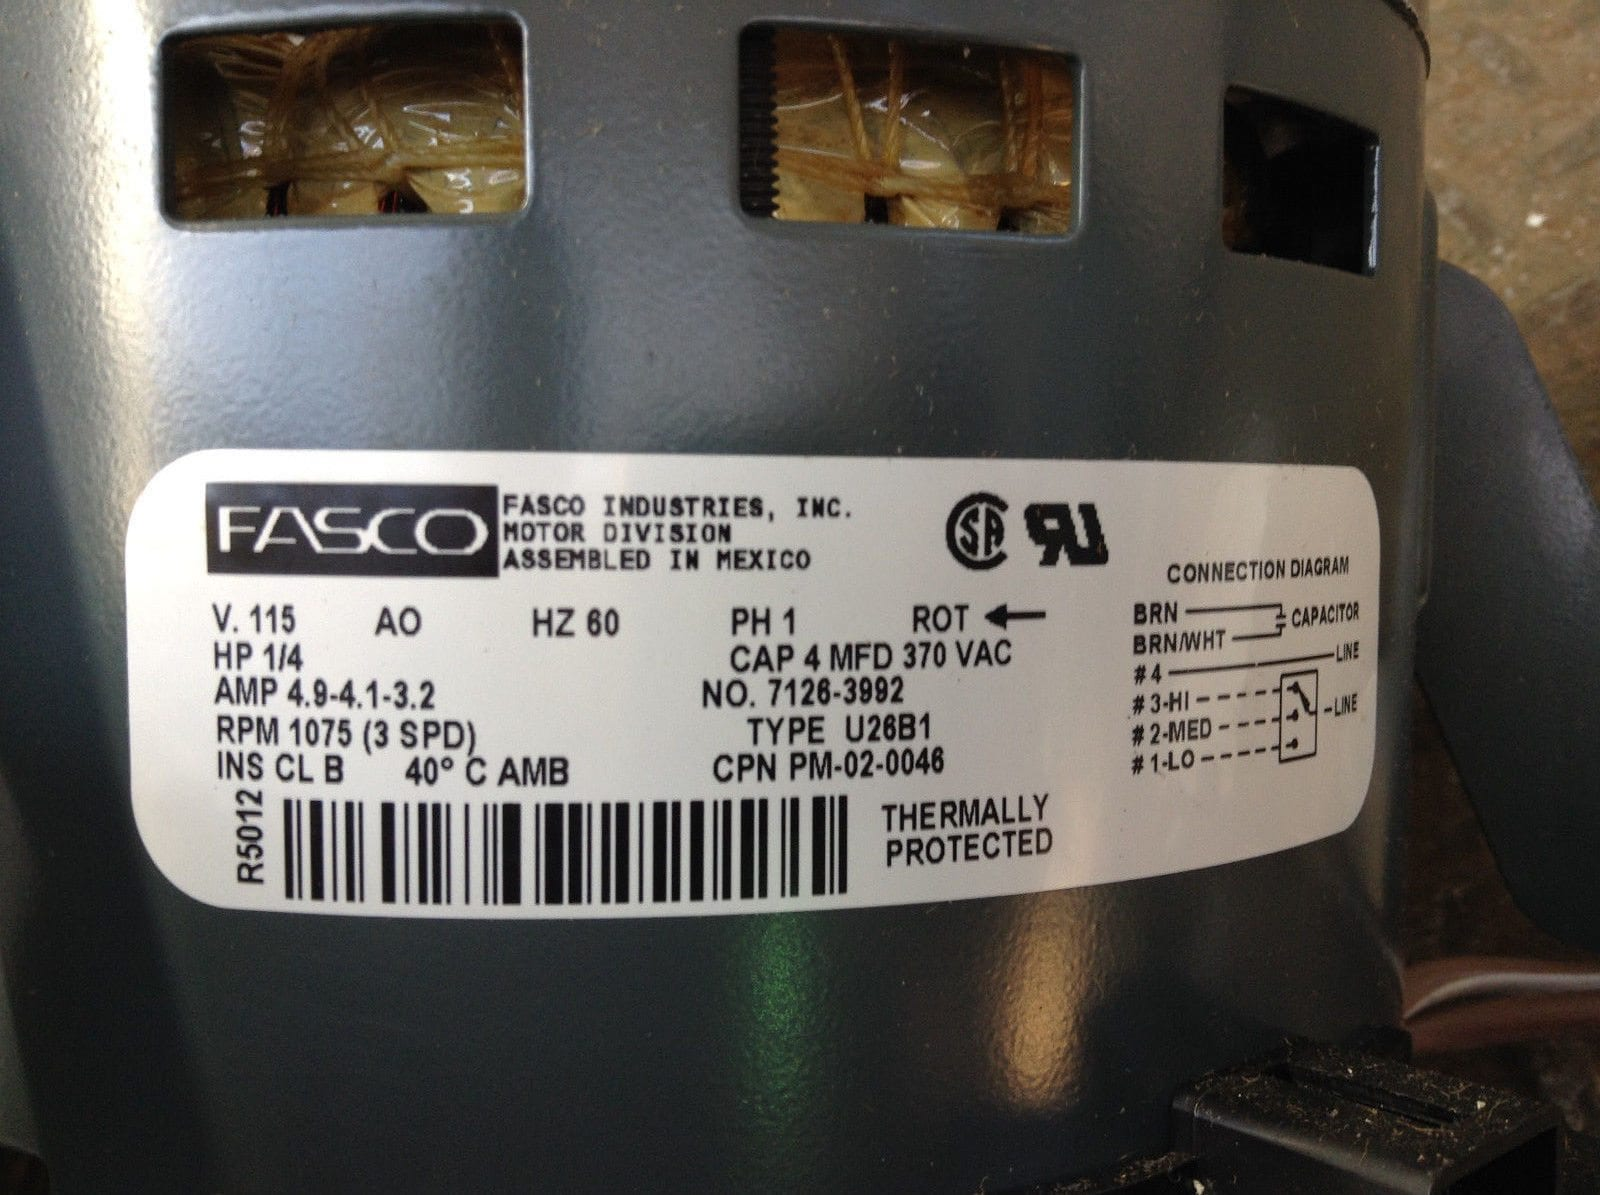 Fasco 7126-3992 Electric Motor 1/4HP 1075RPM 115V 1PH 1/2\